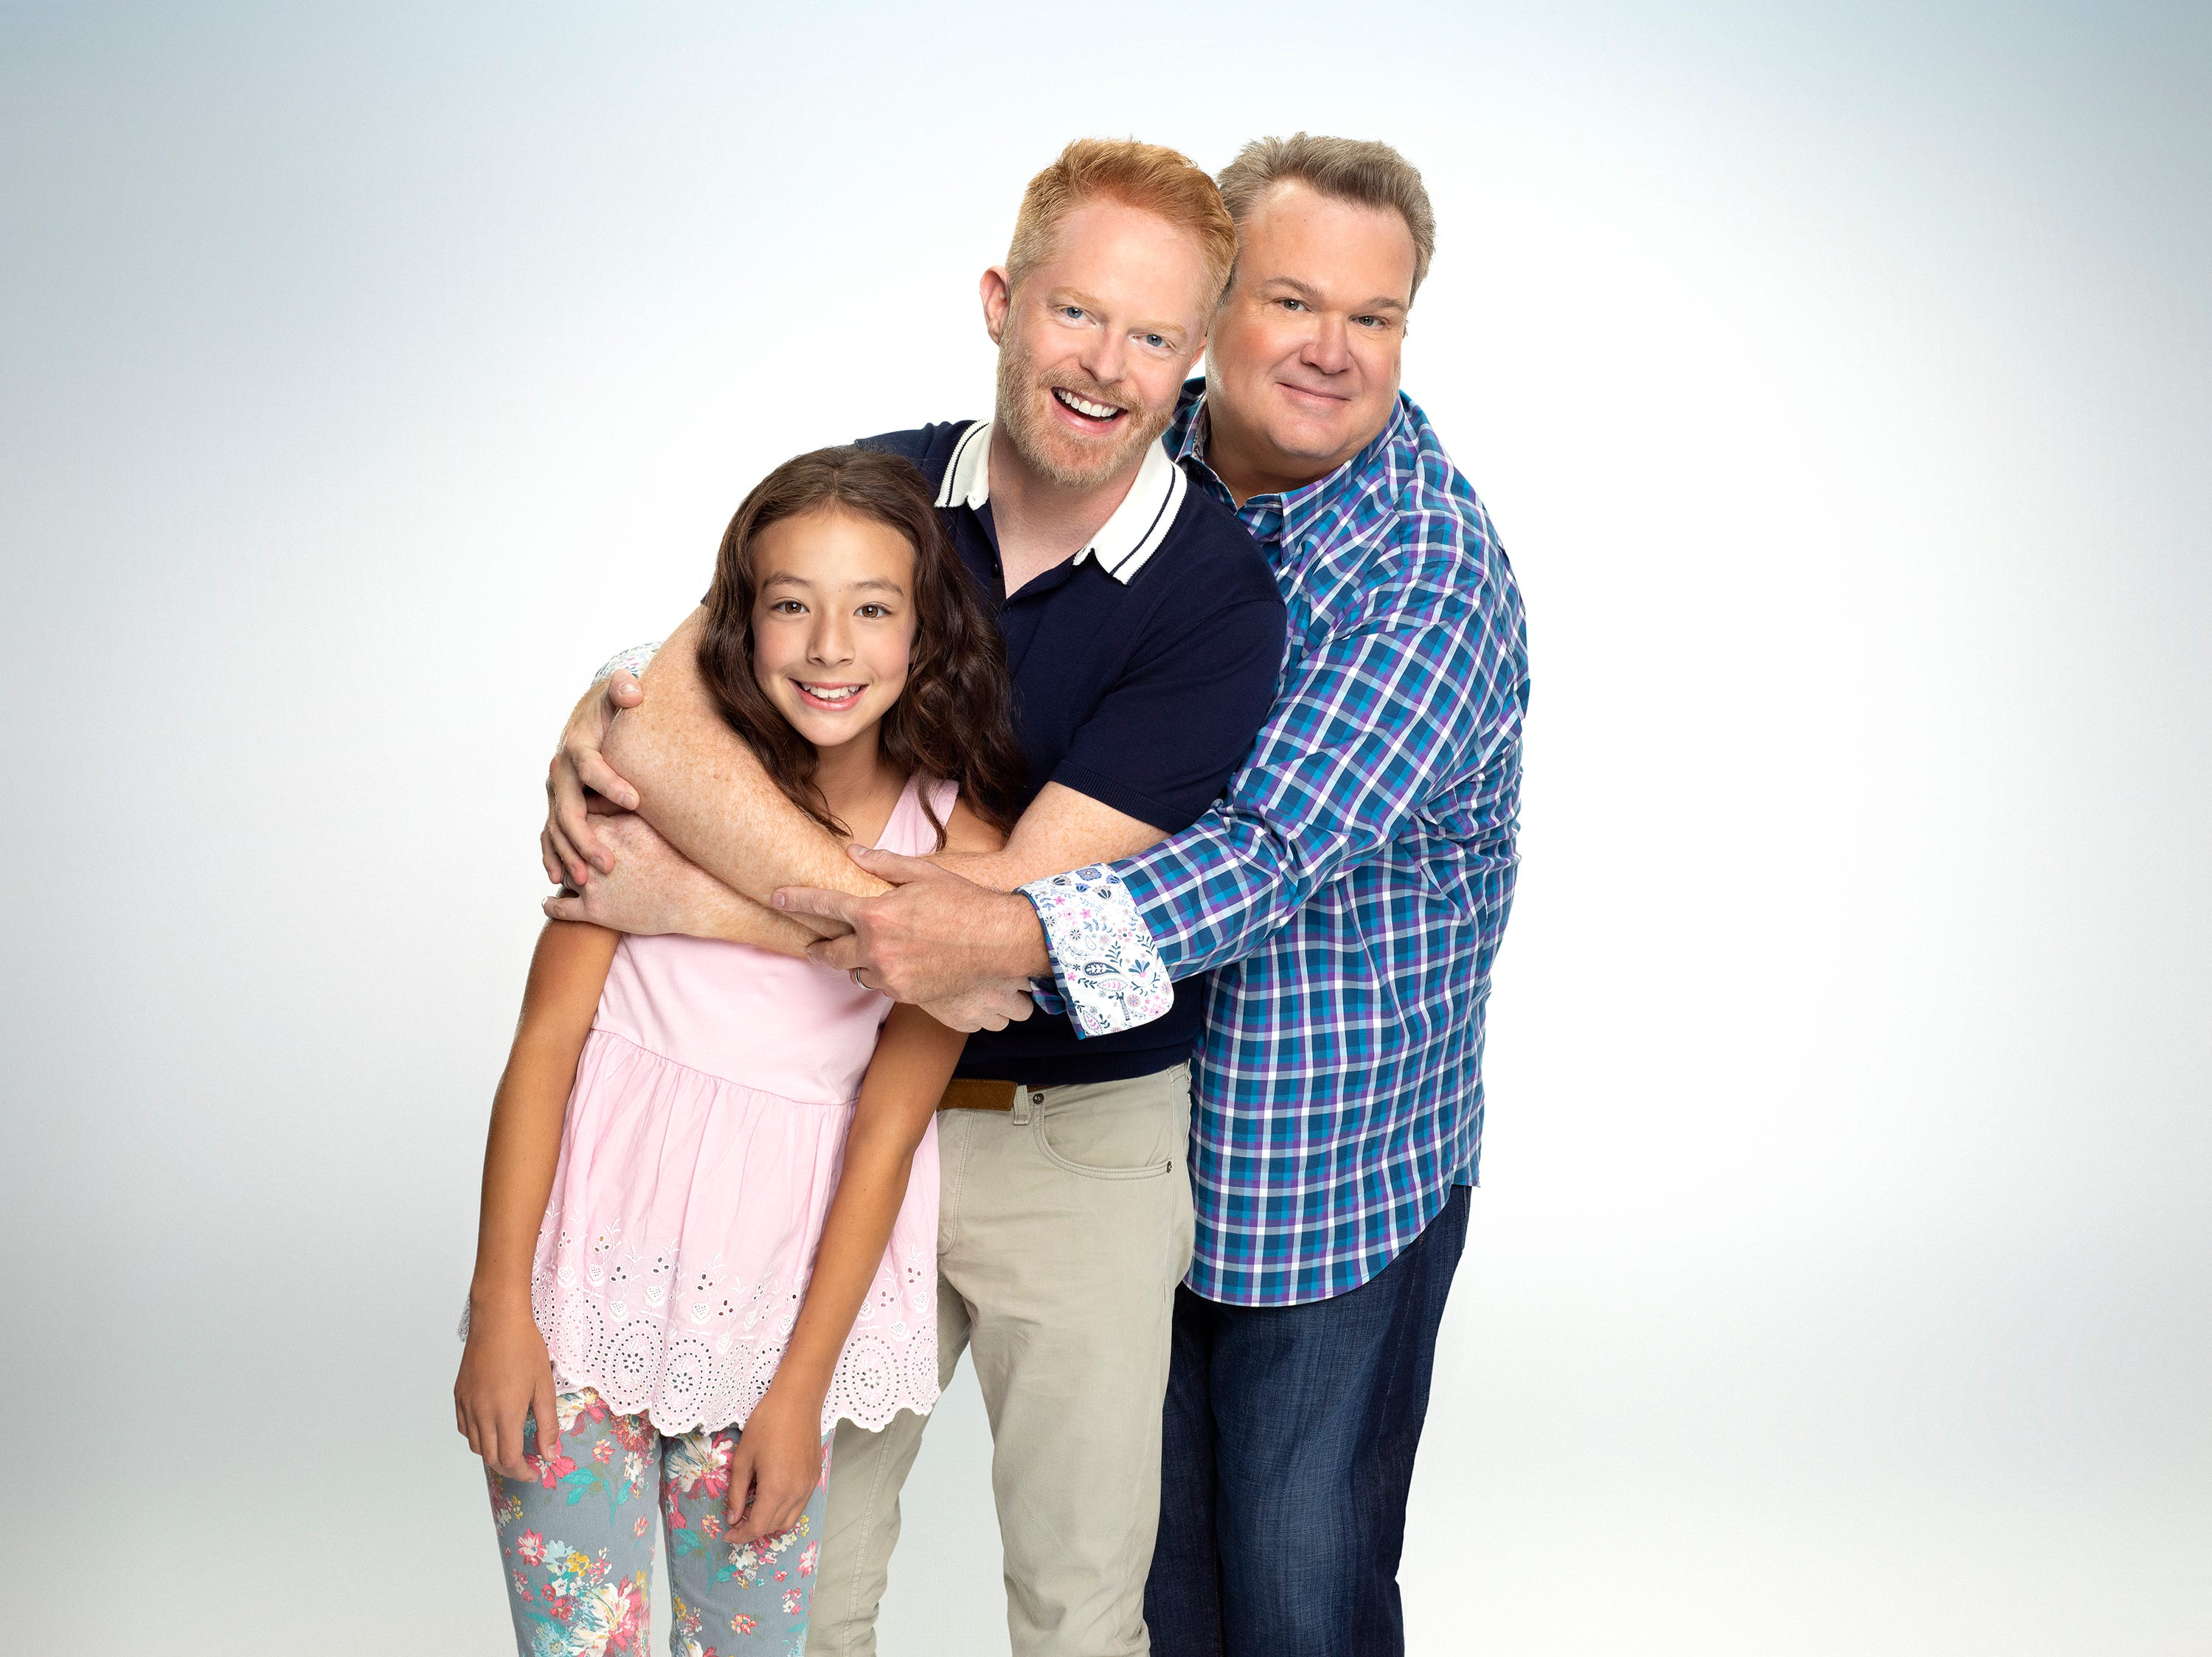 Aubrey Anderson-Emmons as Lily, Jesse Tyler Ferguson as Mitchell and Eric Stonestreet as Cameron.